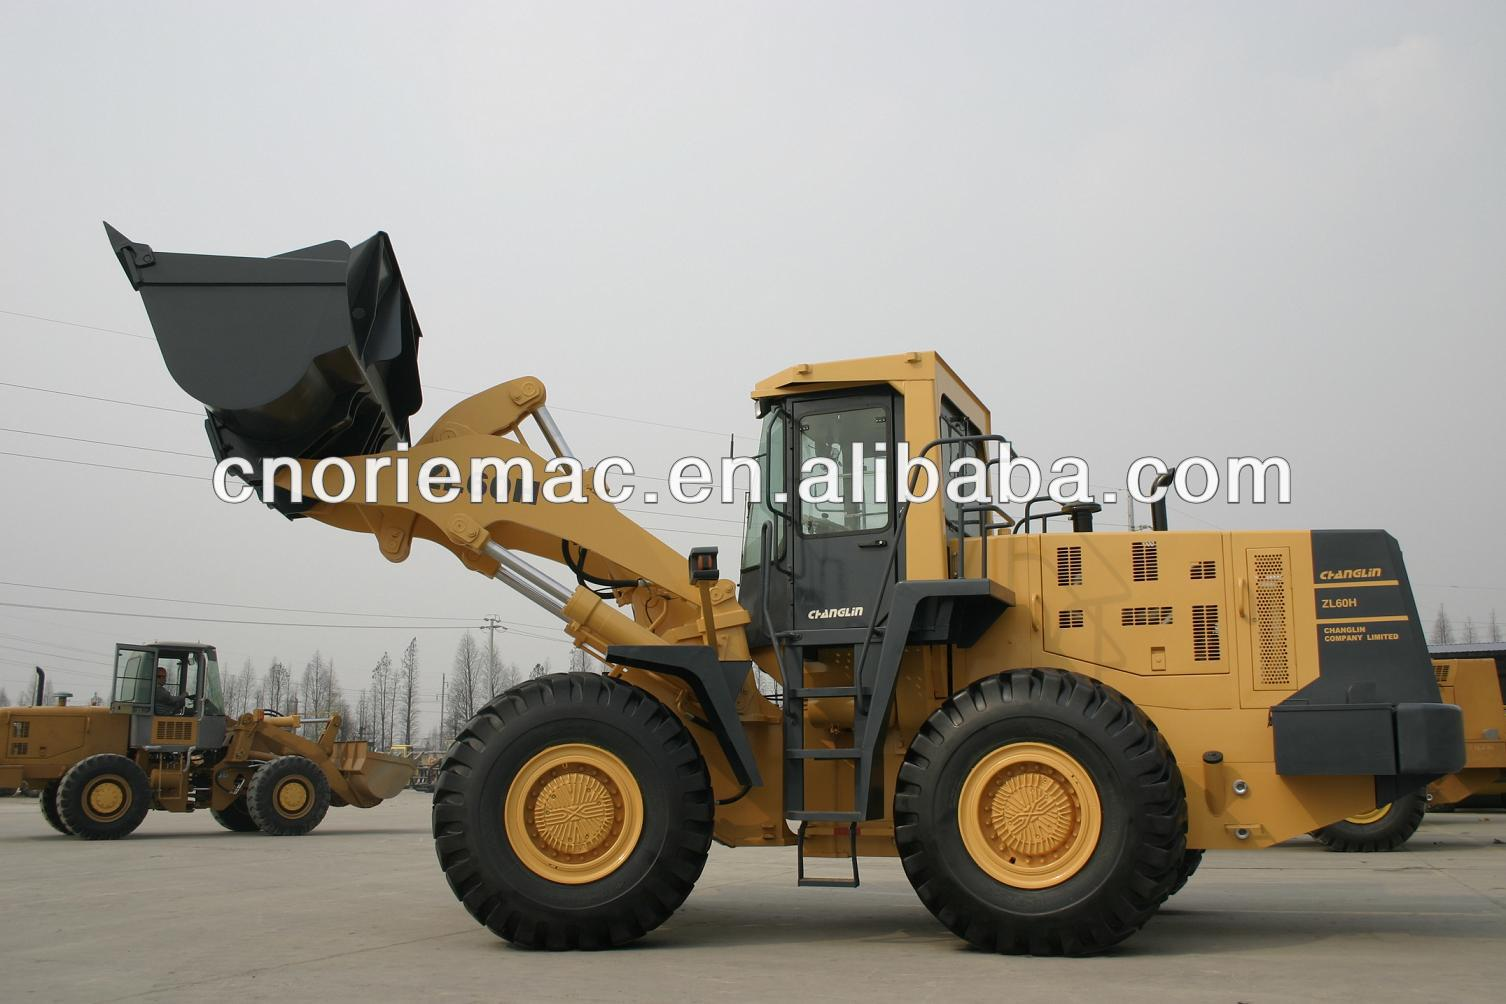 Changlin 6 ton telescopic wheel loader ZL60H